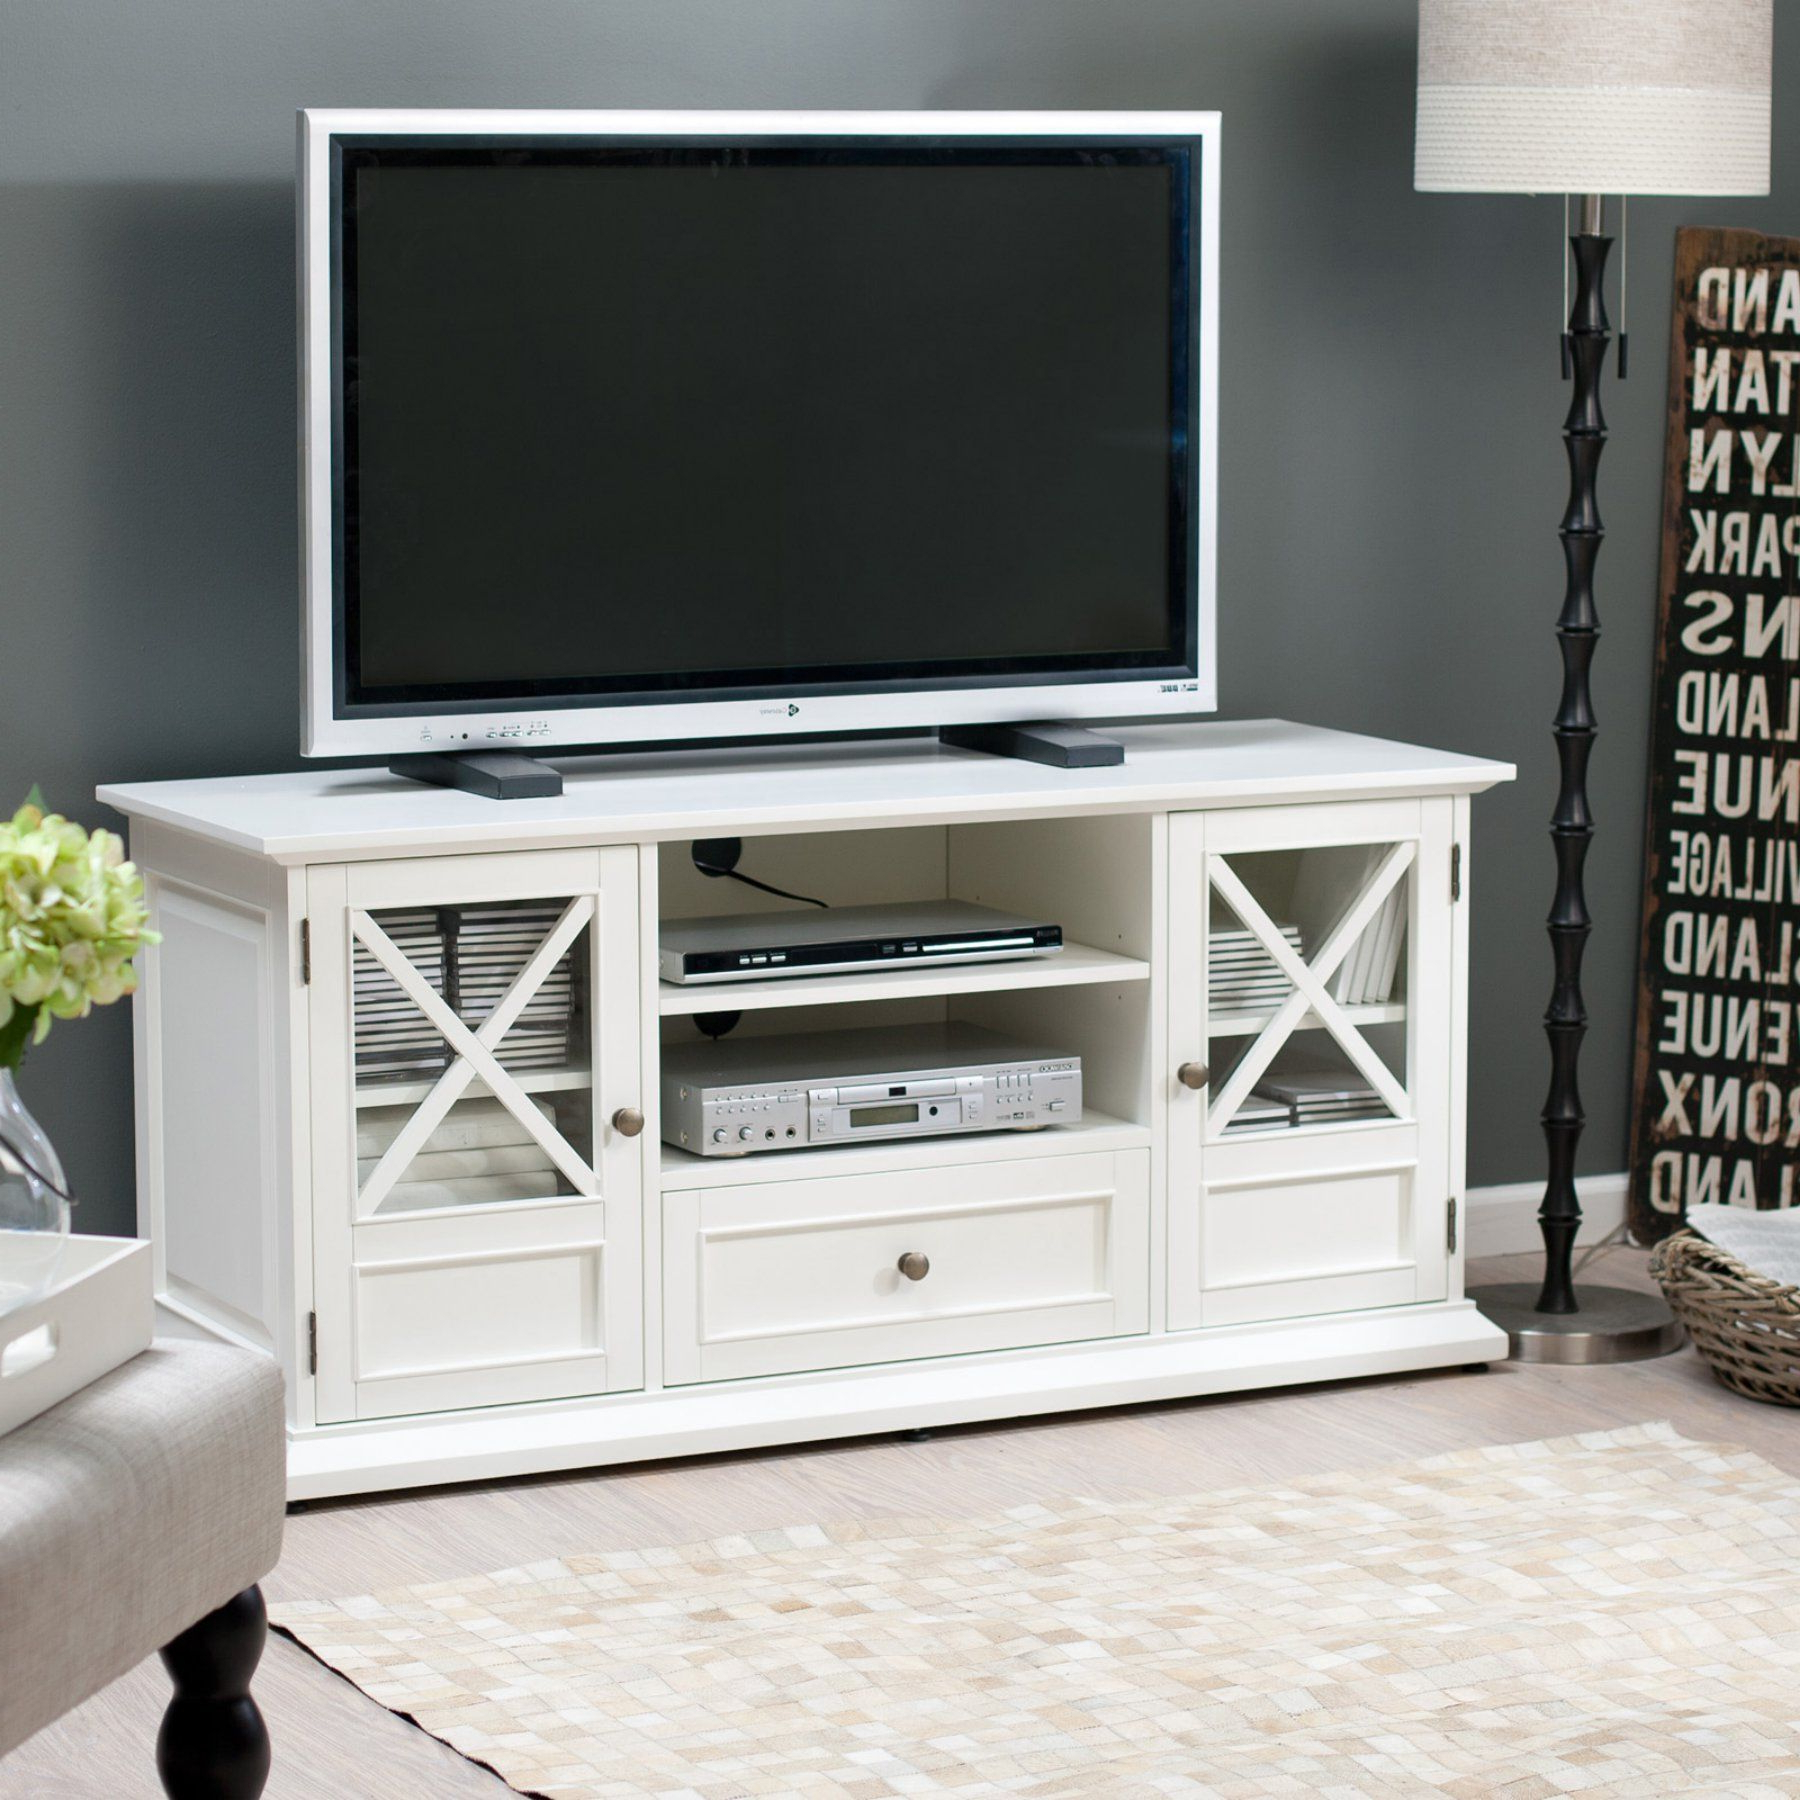 Latest Belham Living Hampton Tv Stand – White In 2018 (Gallery 16 of 20)